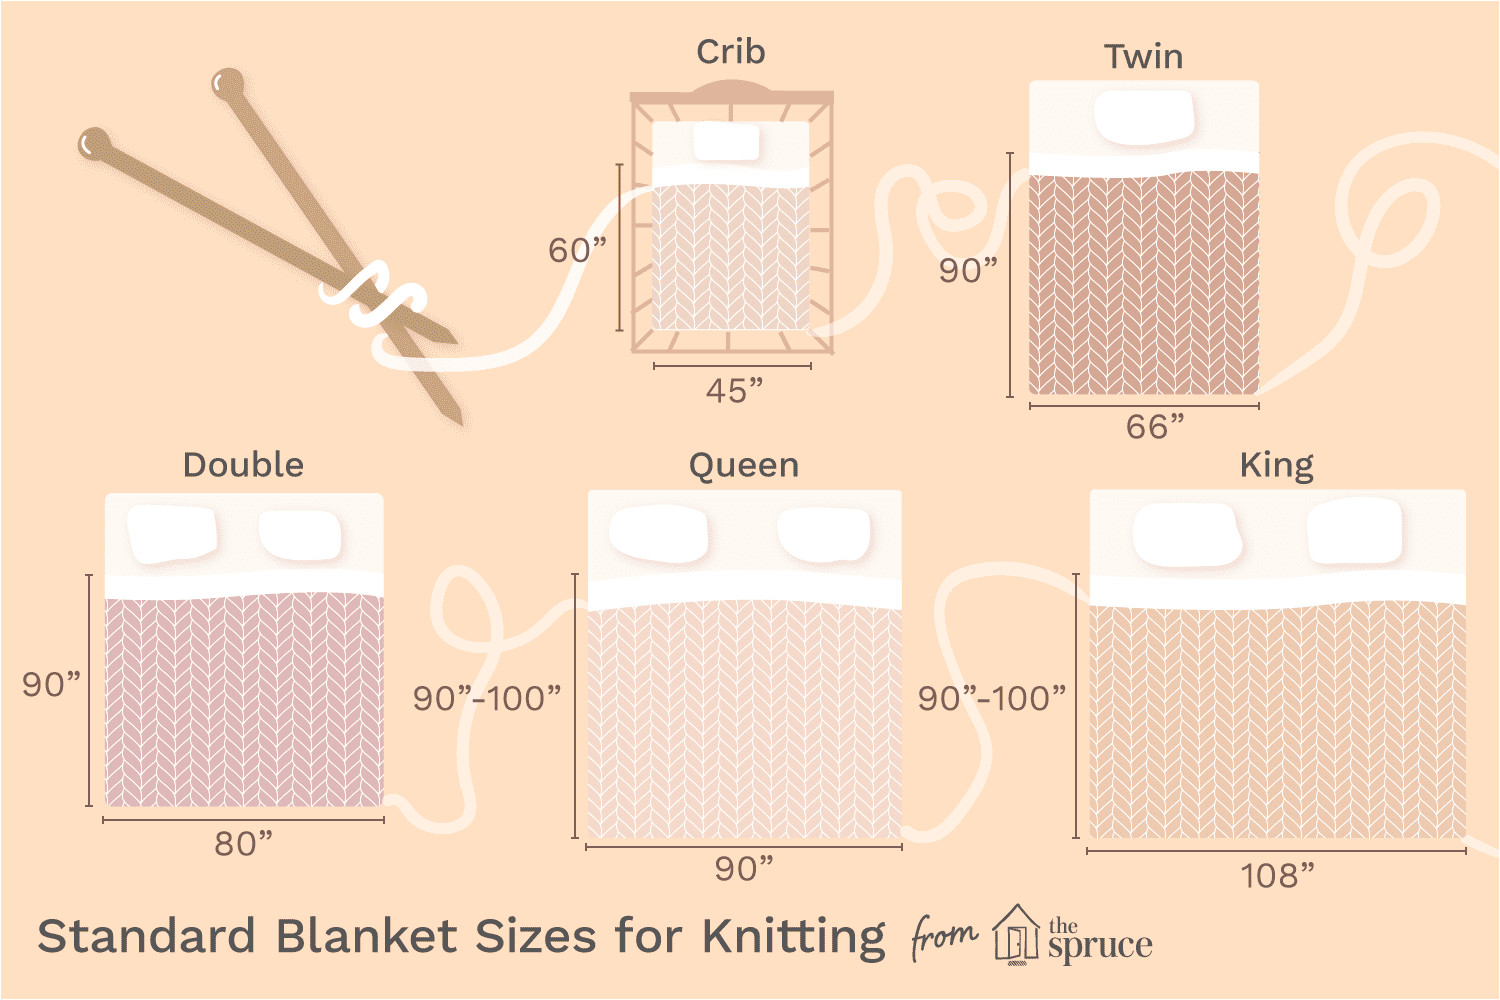 standard bed and blanket sizes 2116316 final 5b64db72c9e77c0025ad020f png